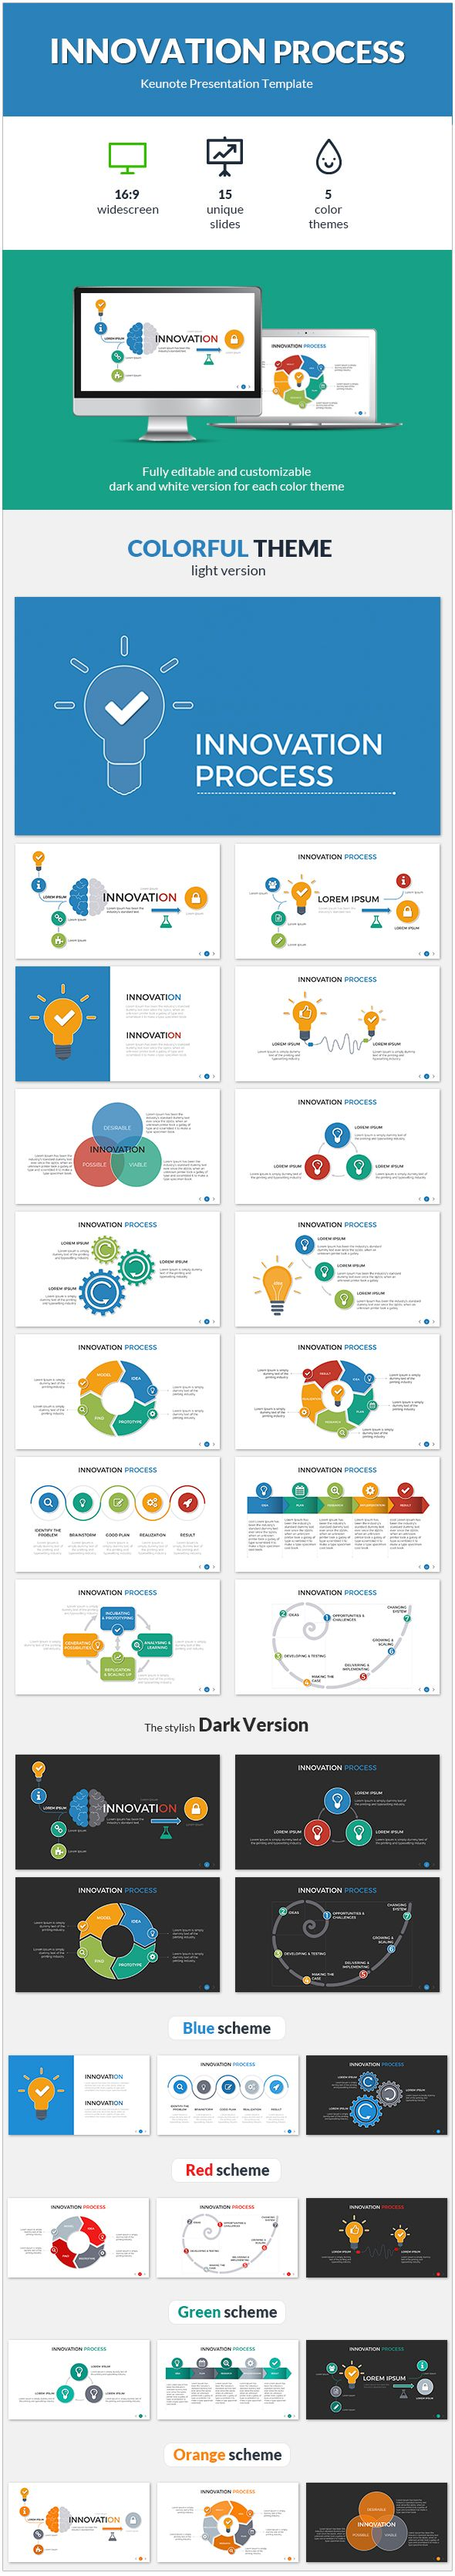 Innovation Process Presentation Template